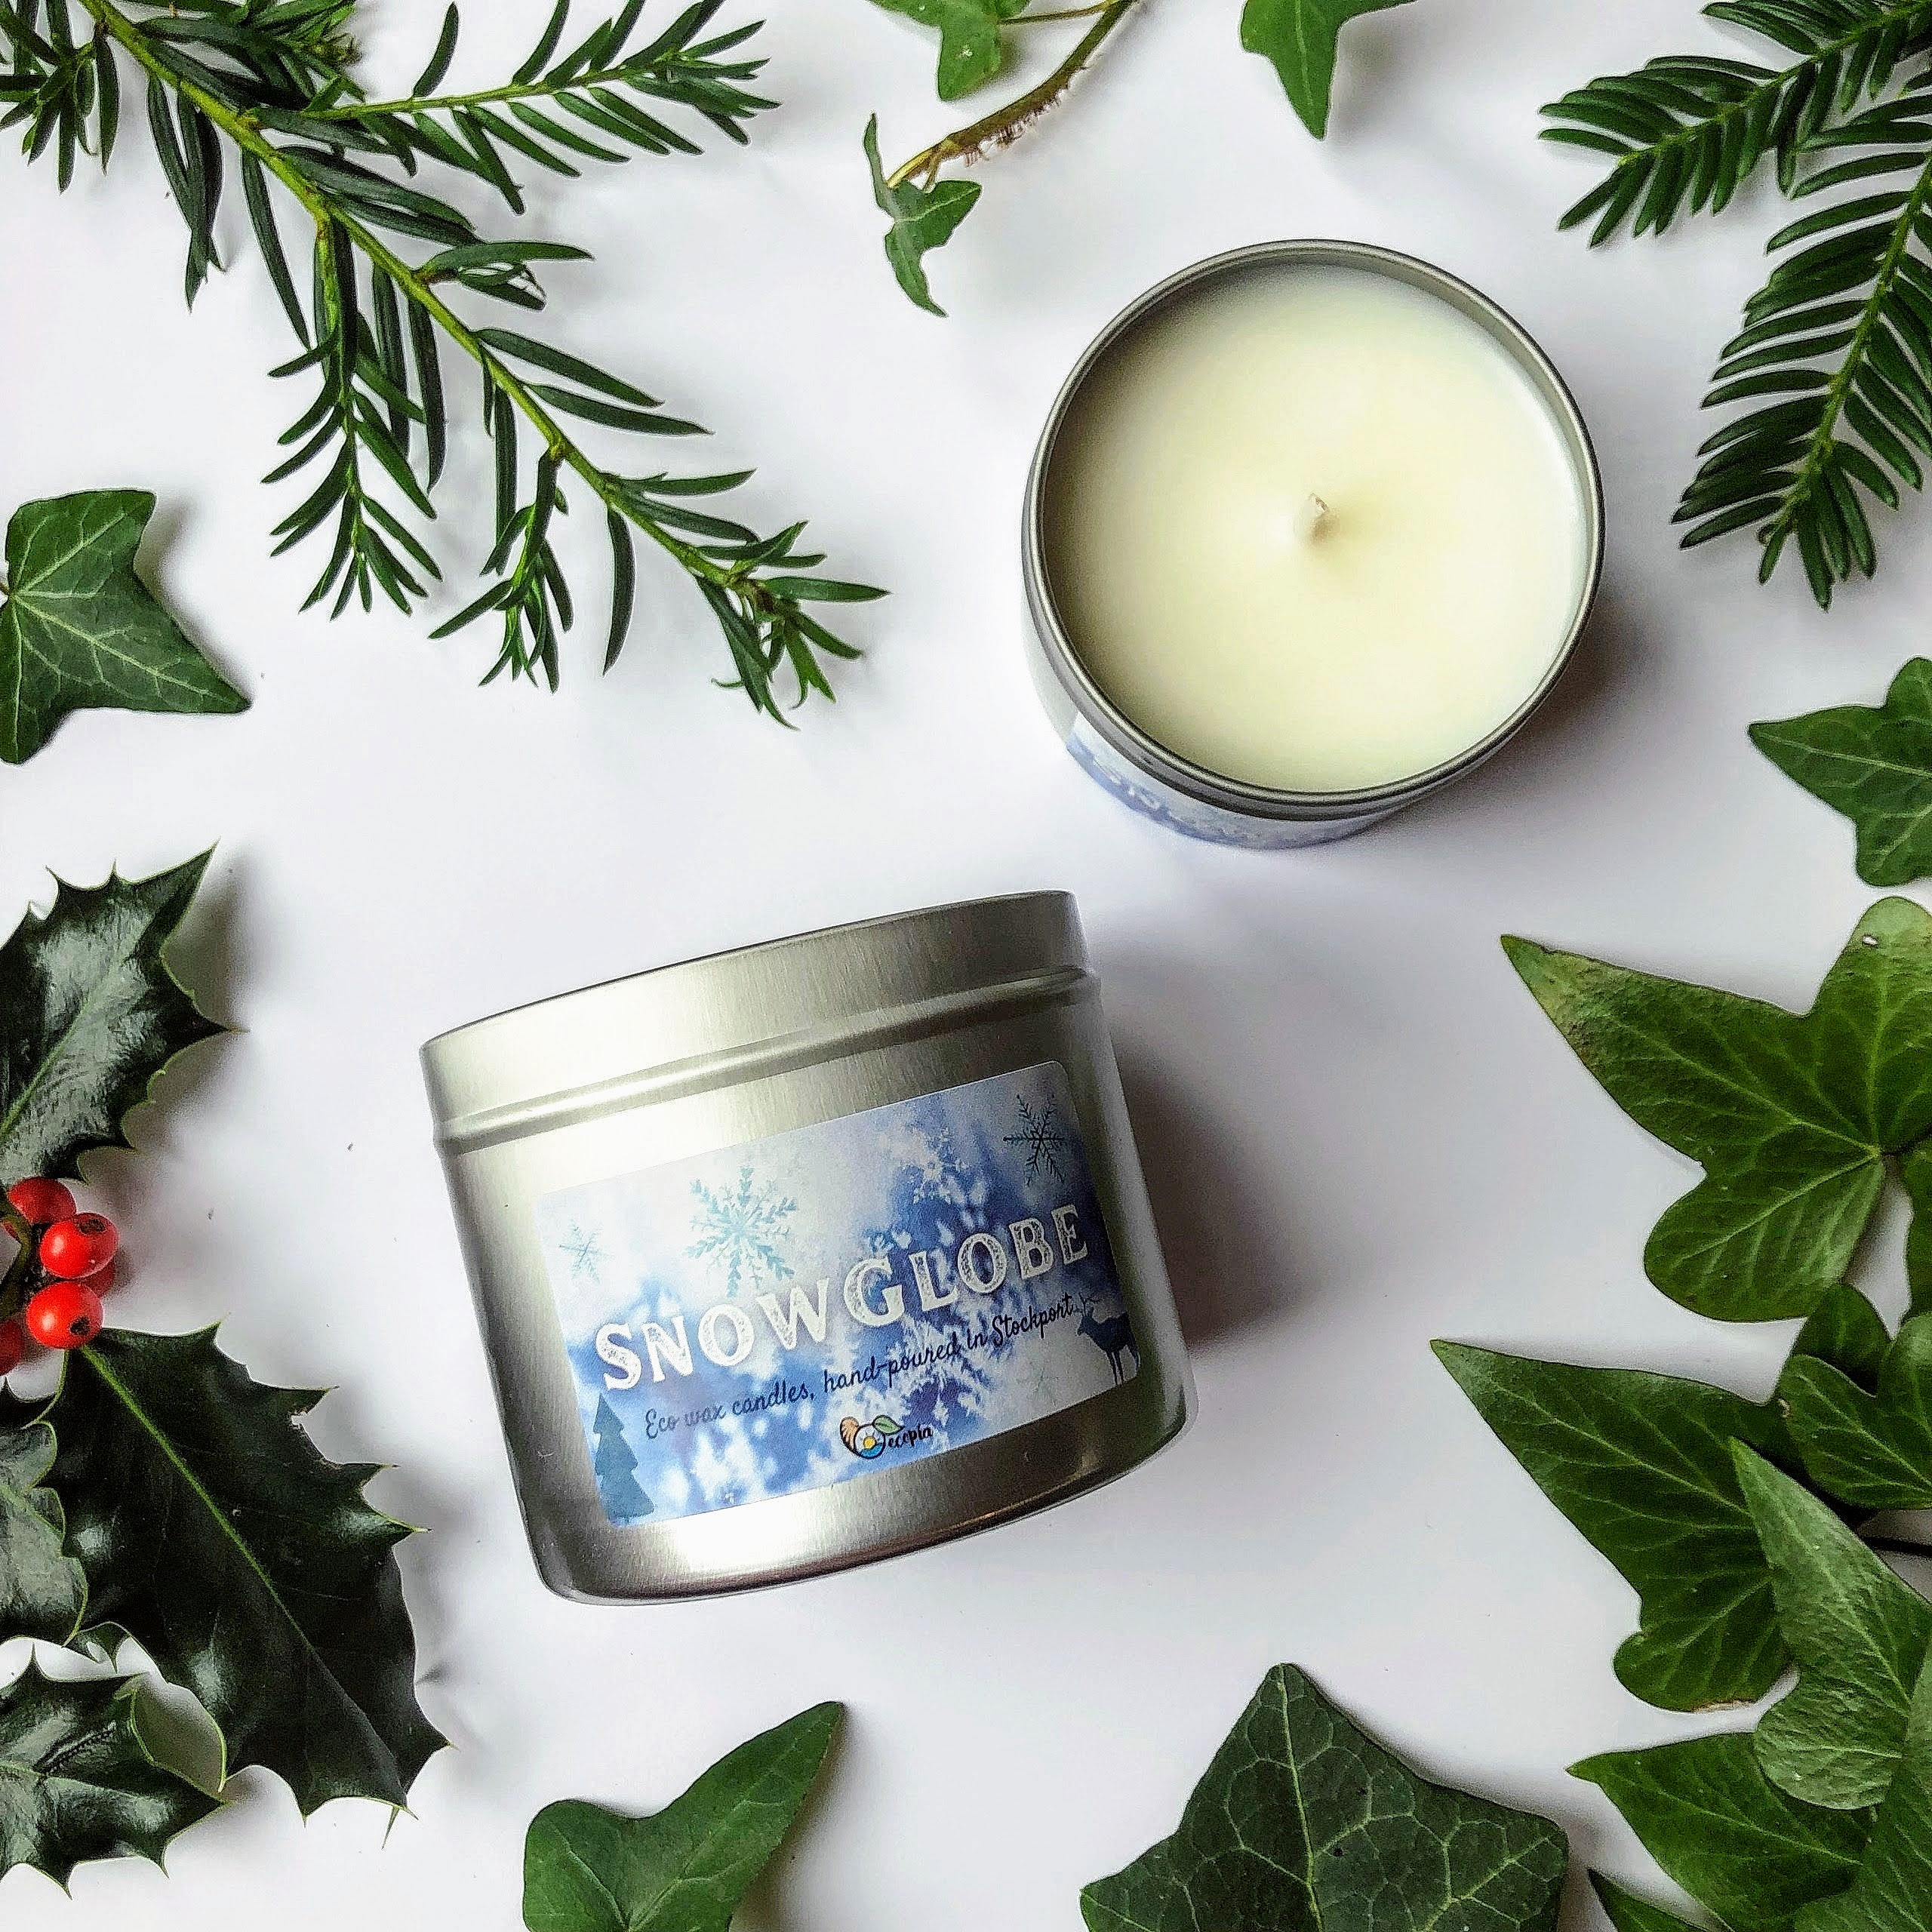 Snow Globe Christmas candle made in Stockport with eco coconut wax